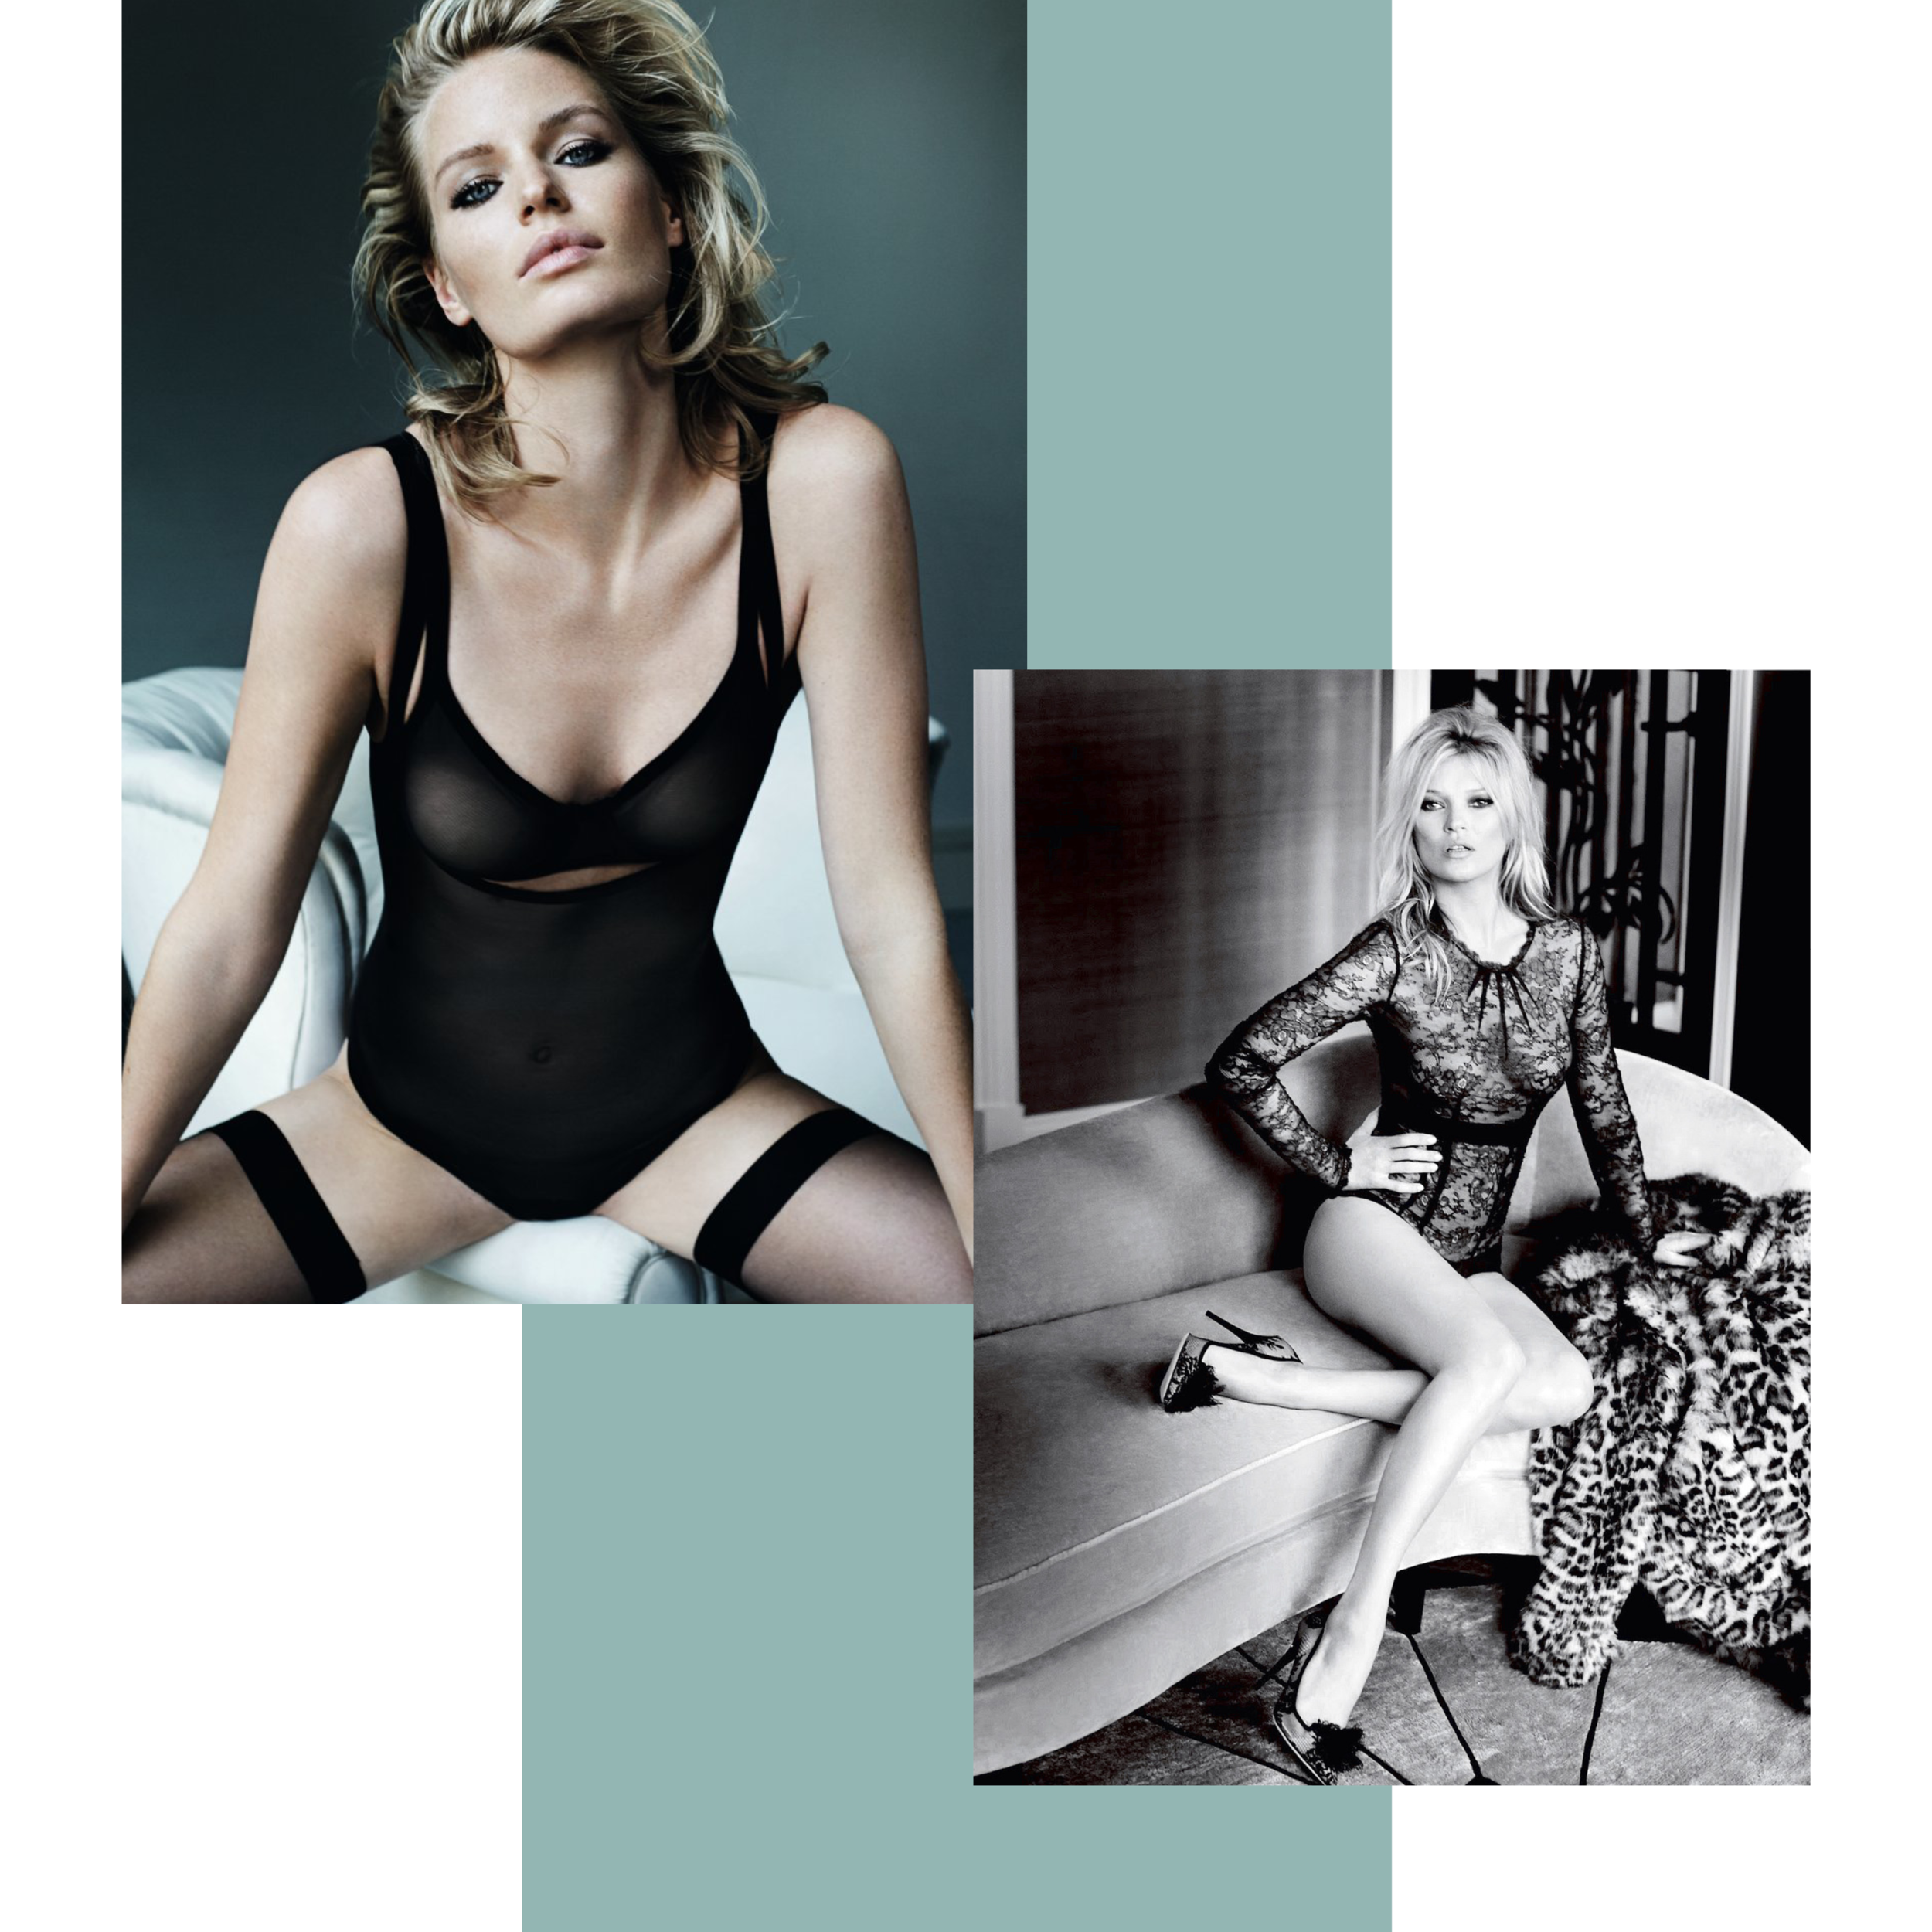 mario-testino-fashion-lingerie-photographer-editorial-underwear-underpinnings-style-sensual-seductive-photo-shoot-03